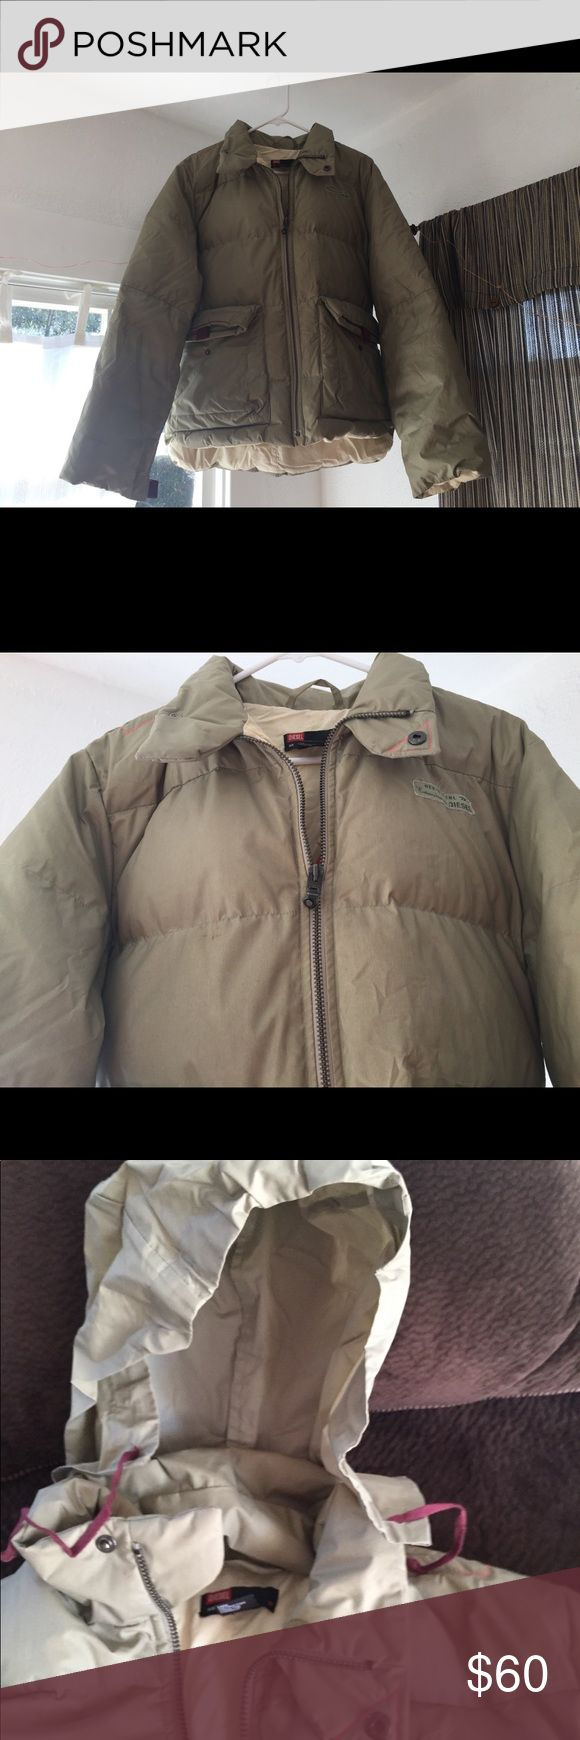 Men's Diesel Coat XL This is an older but rarely worn, very warm Diesel coat.  I wore it as a female and loved it, just live where I don't need this warm of a coat. Diesel Jackets & Coats Puffers